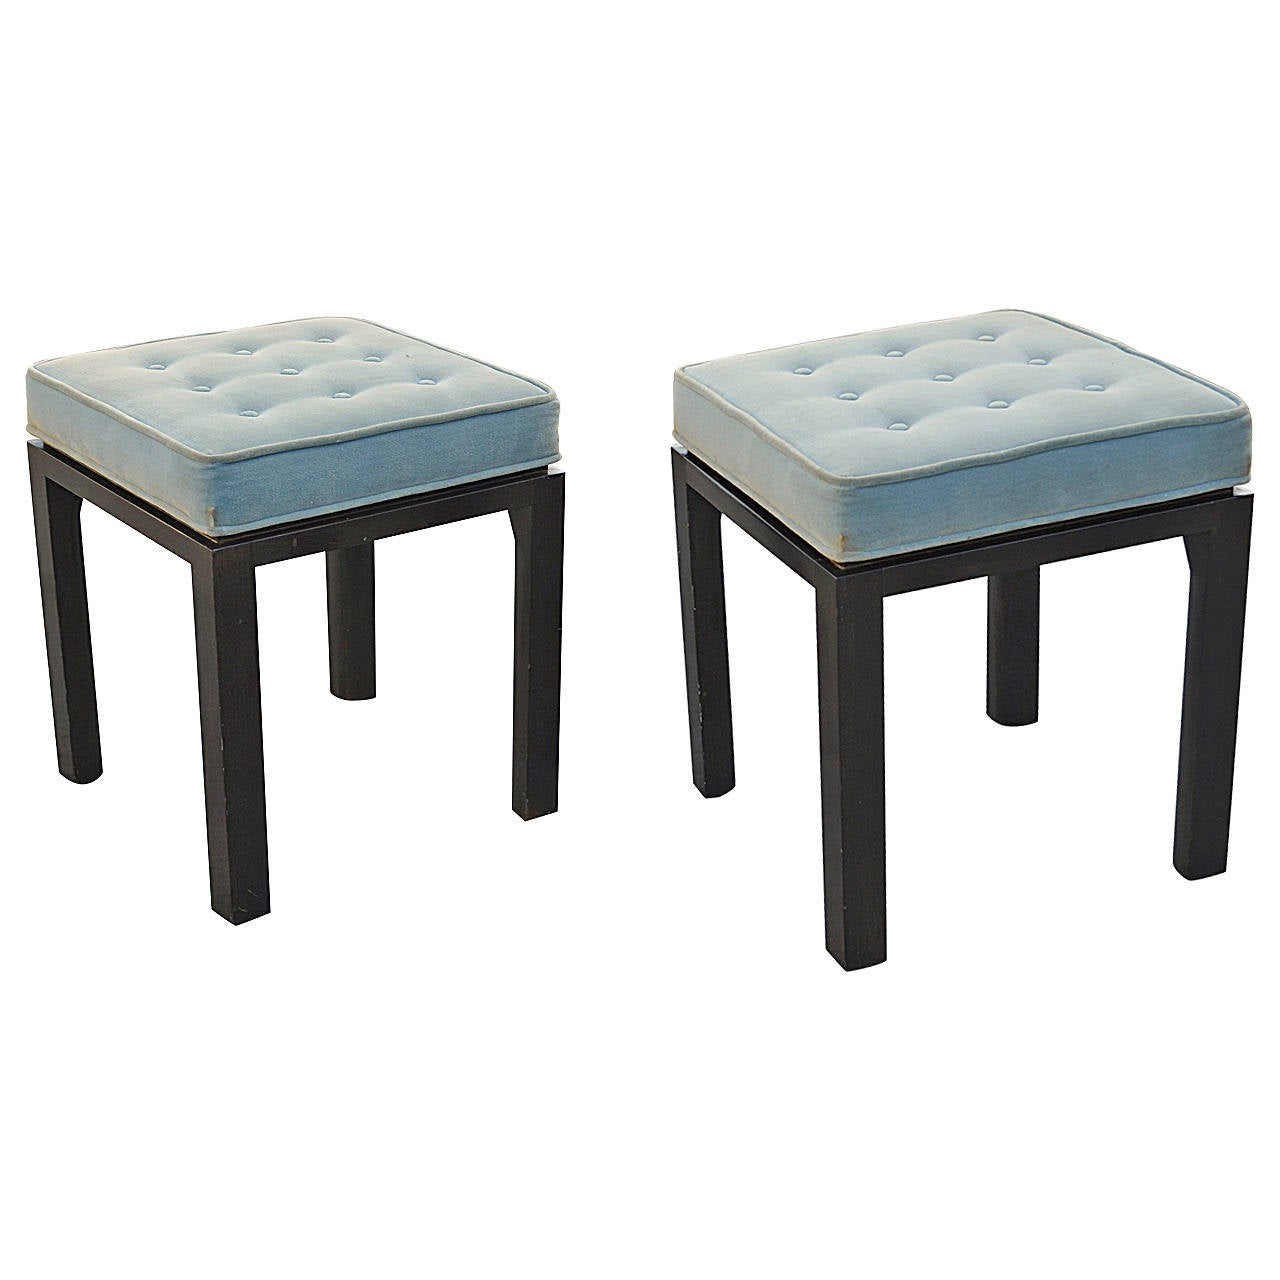 Great Pair Of Stools / Benches By Harvey Probber 1 Design Ideas